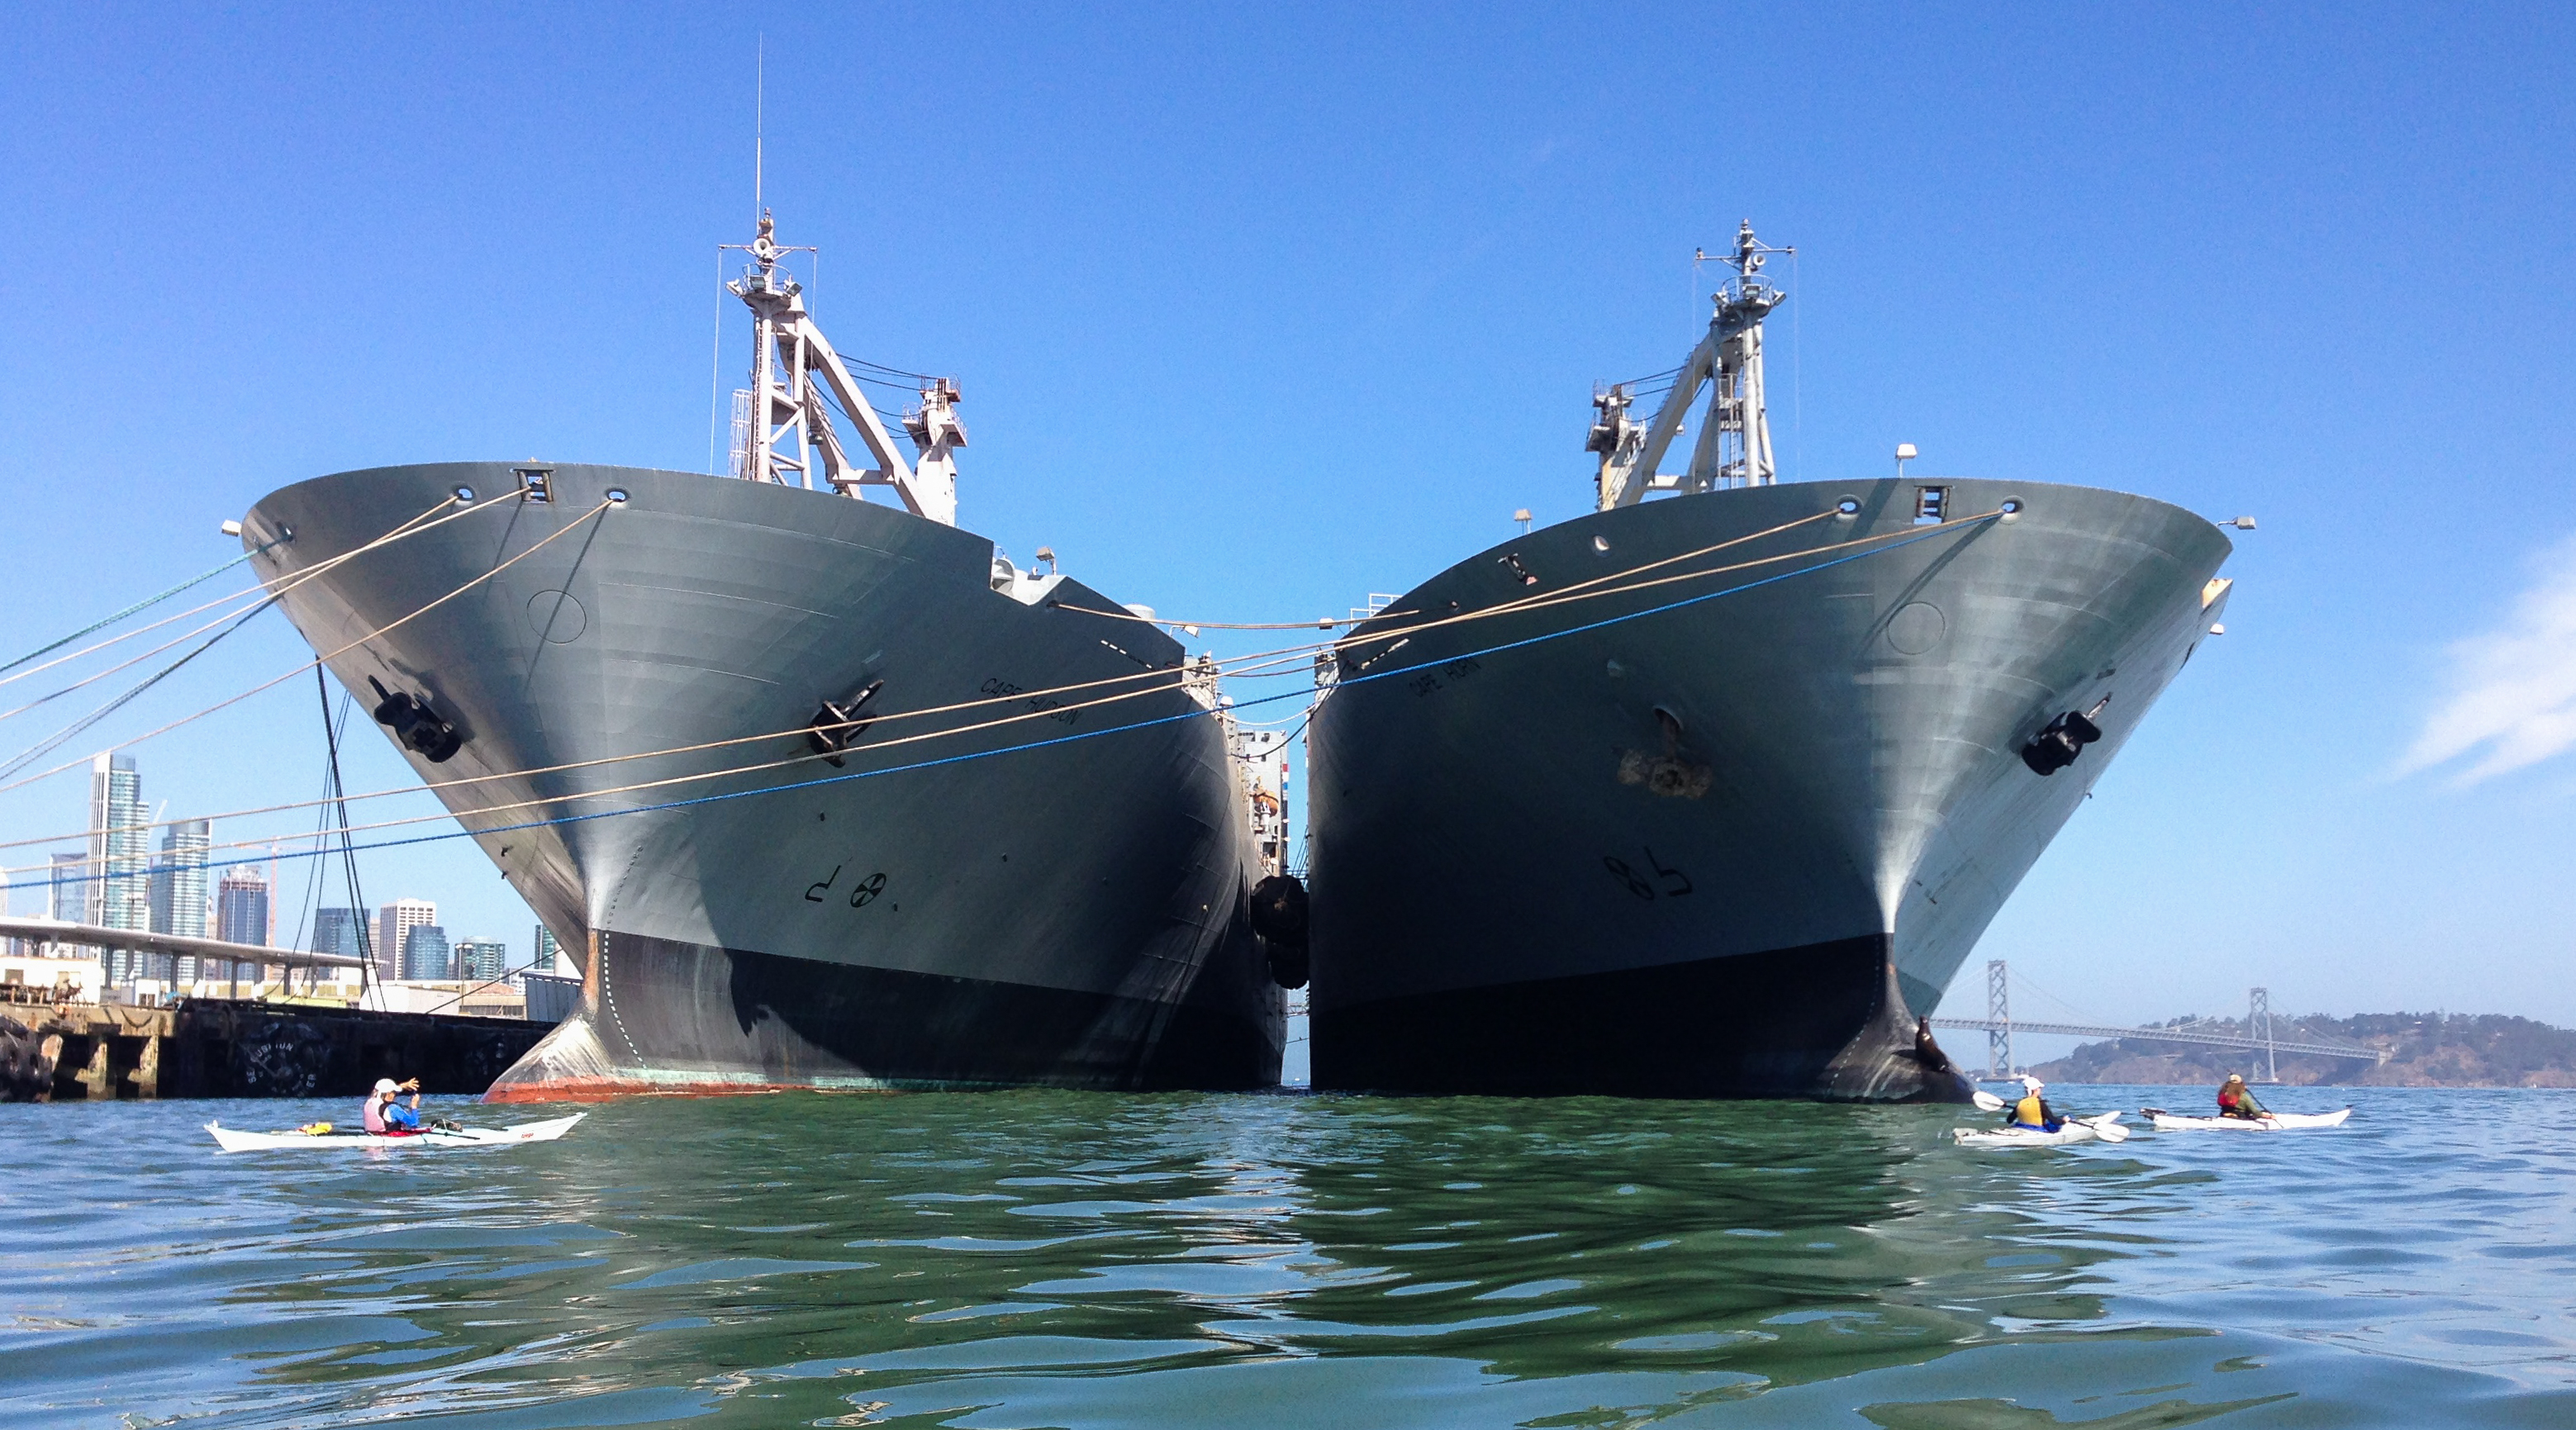 Two large ships loom over kayakers just under their bows